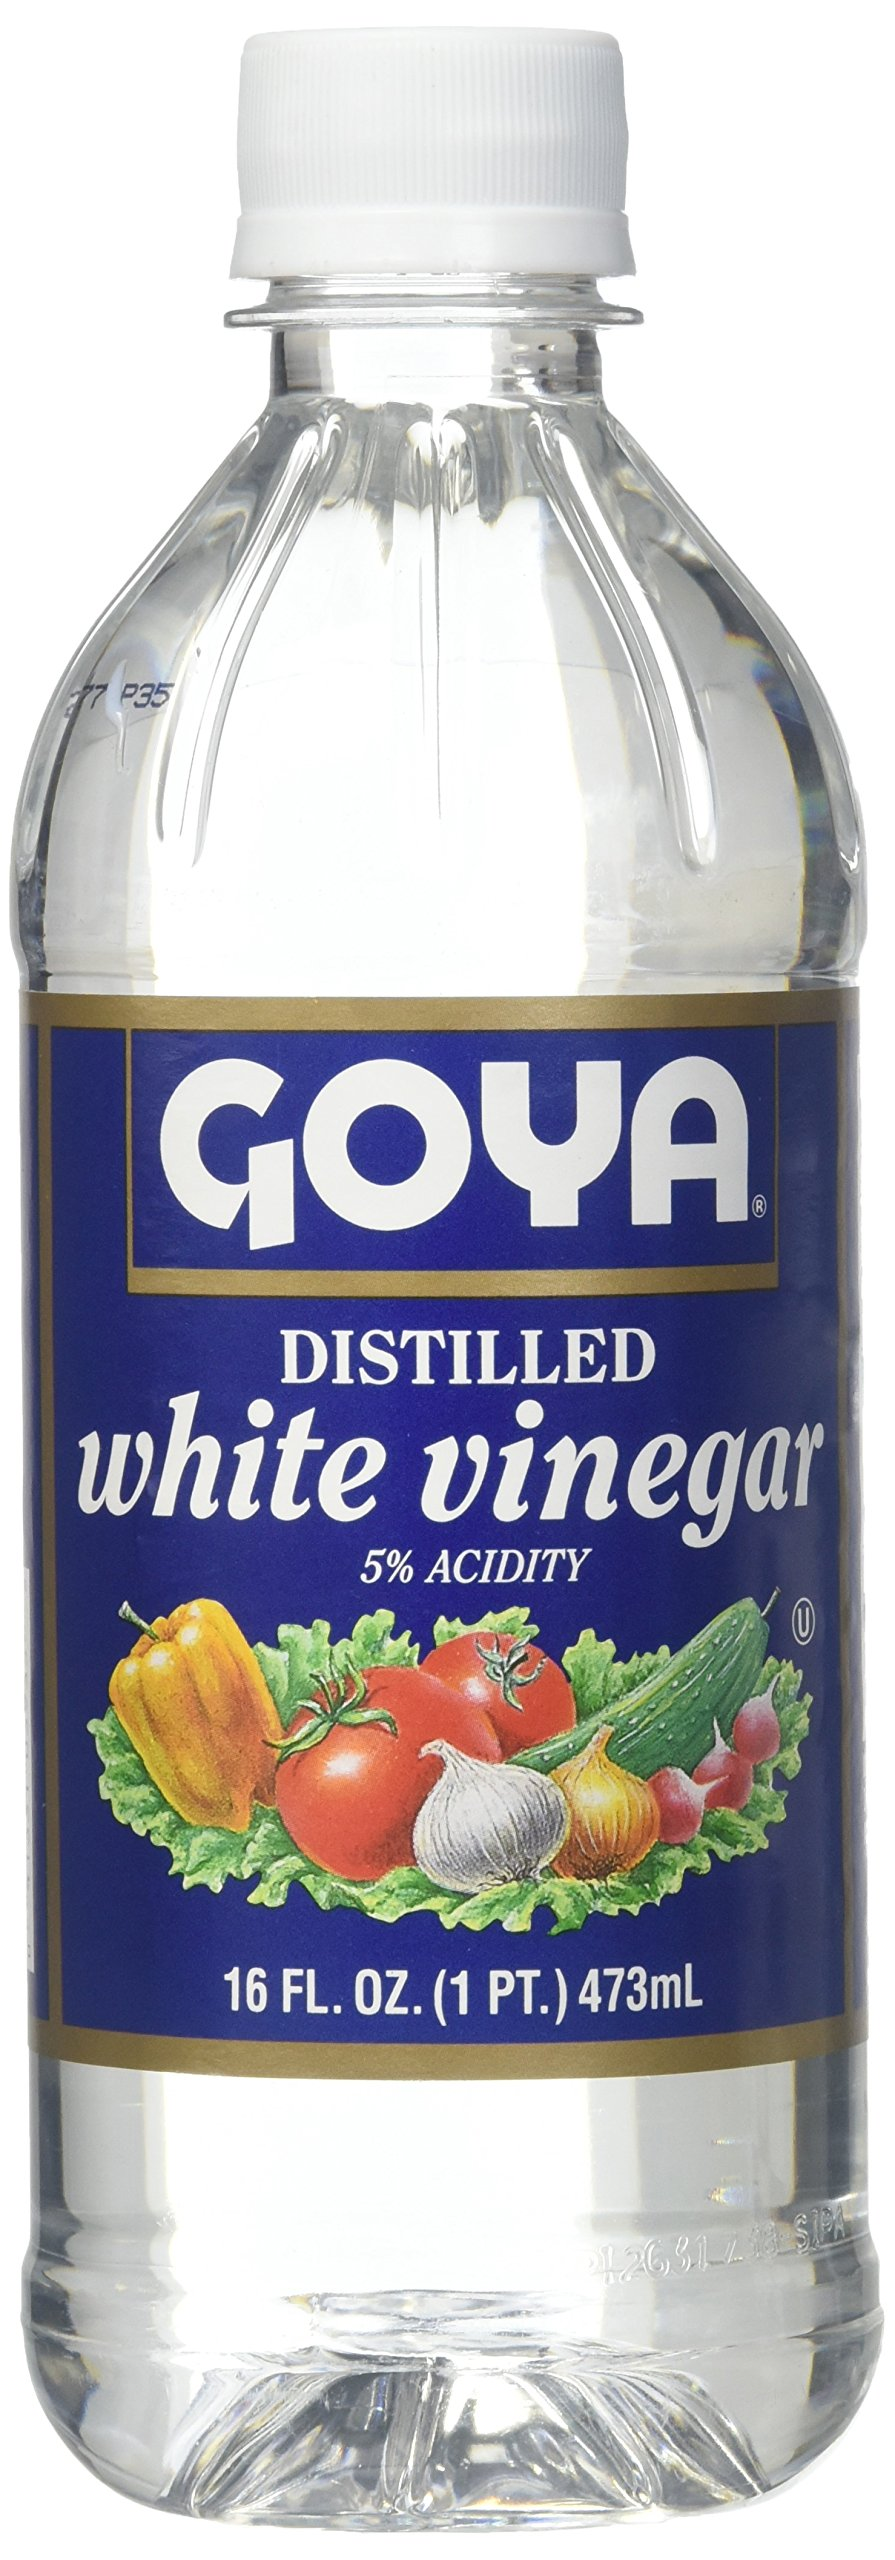 Goya WHITE VINEGAR, destilled - 8 x 16 fl. oz. by Goya